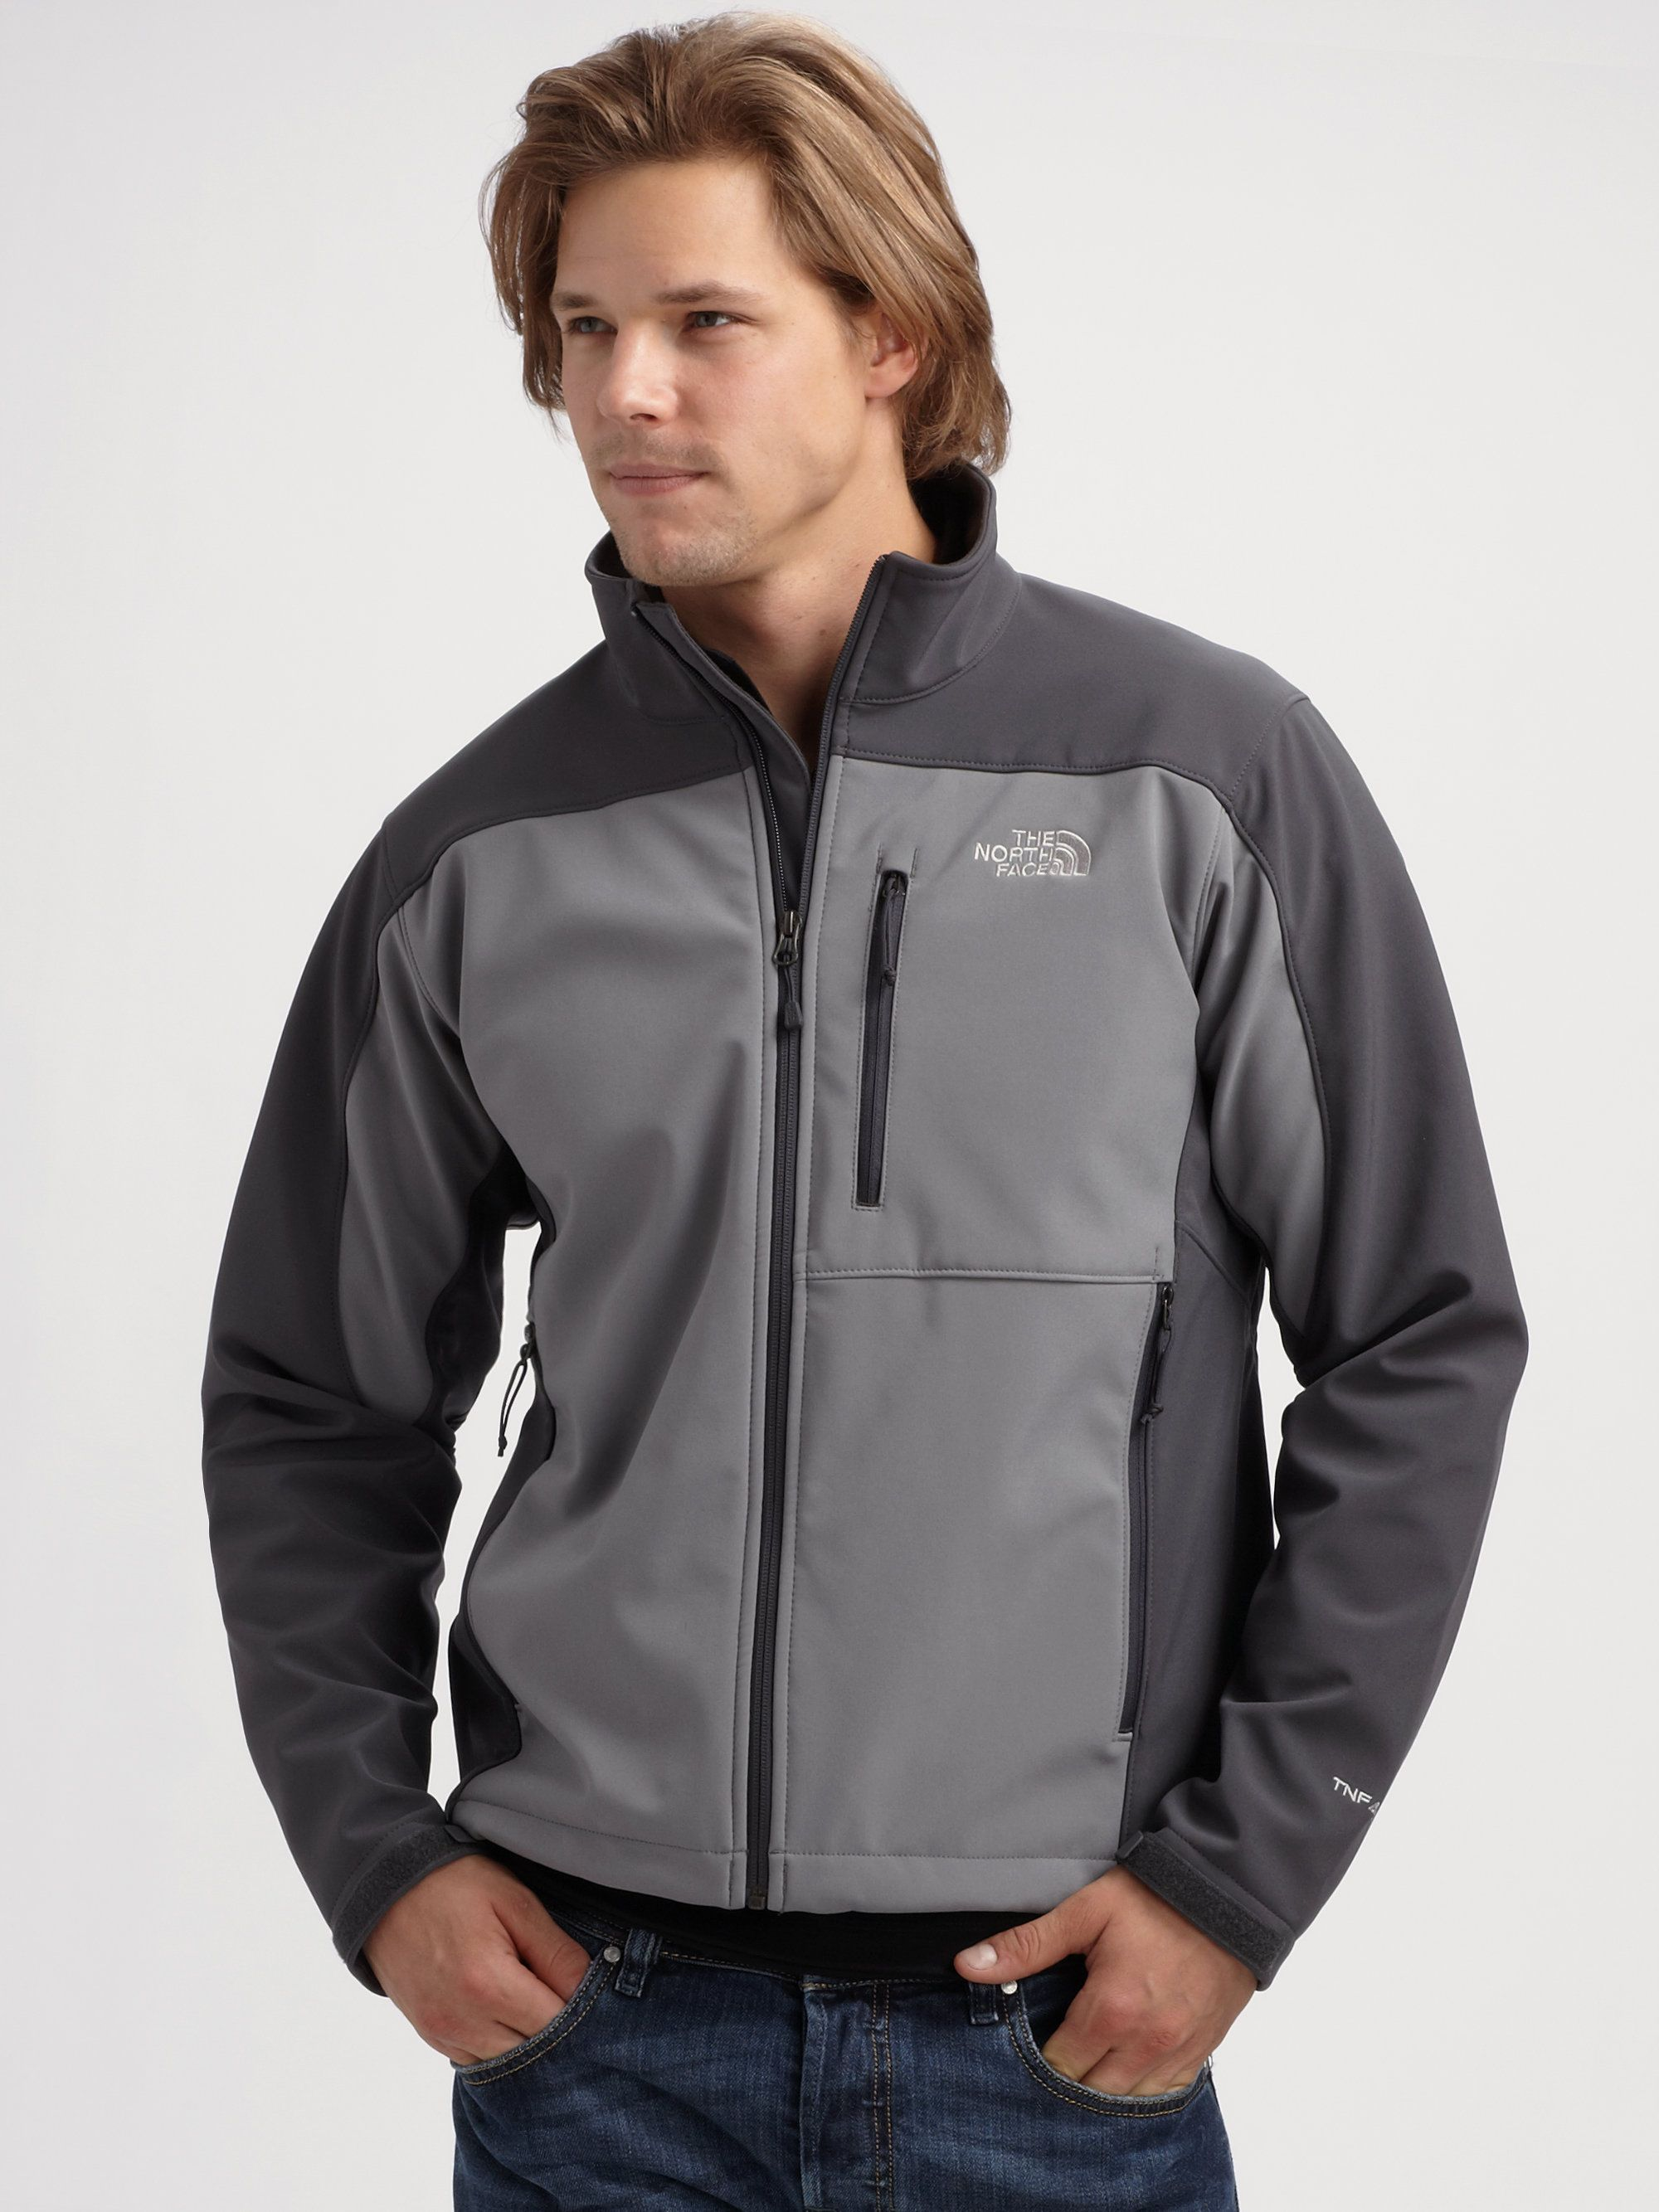 6fa0bf7cd The North Face Apex Bionic Jacket in Gray for Men (zinc grey ...